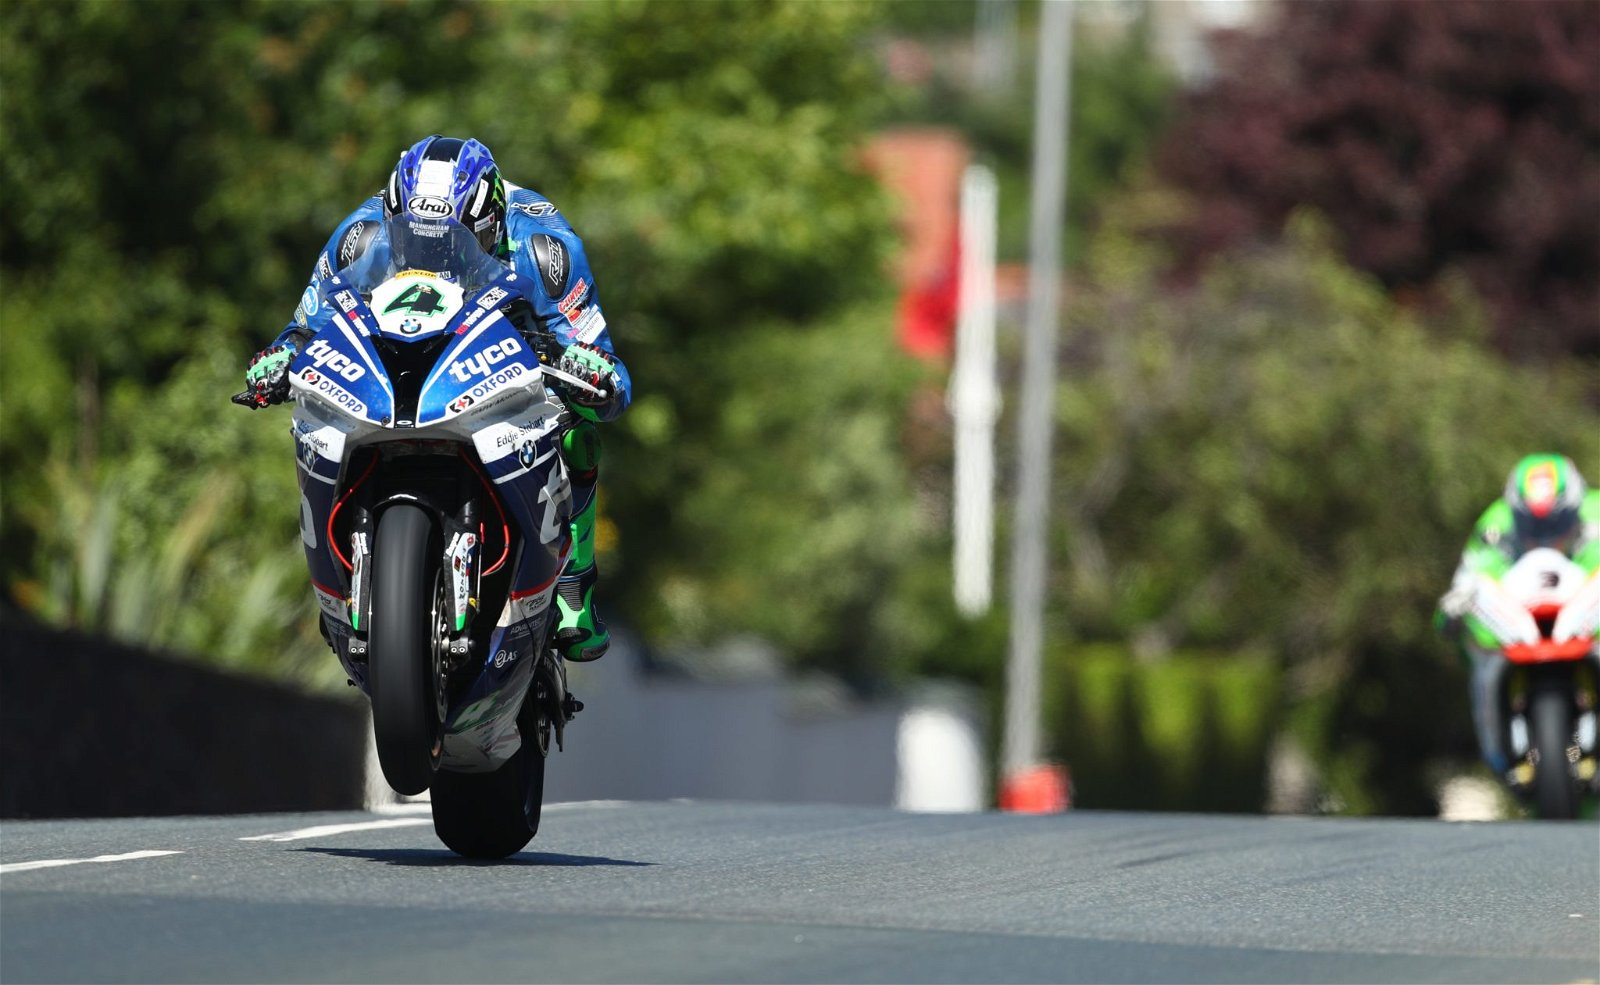 Ian Hutchinson at the TT in 2017 image by Double Red